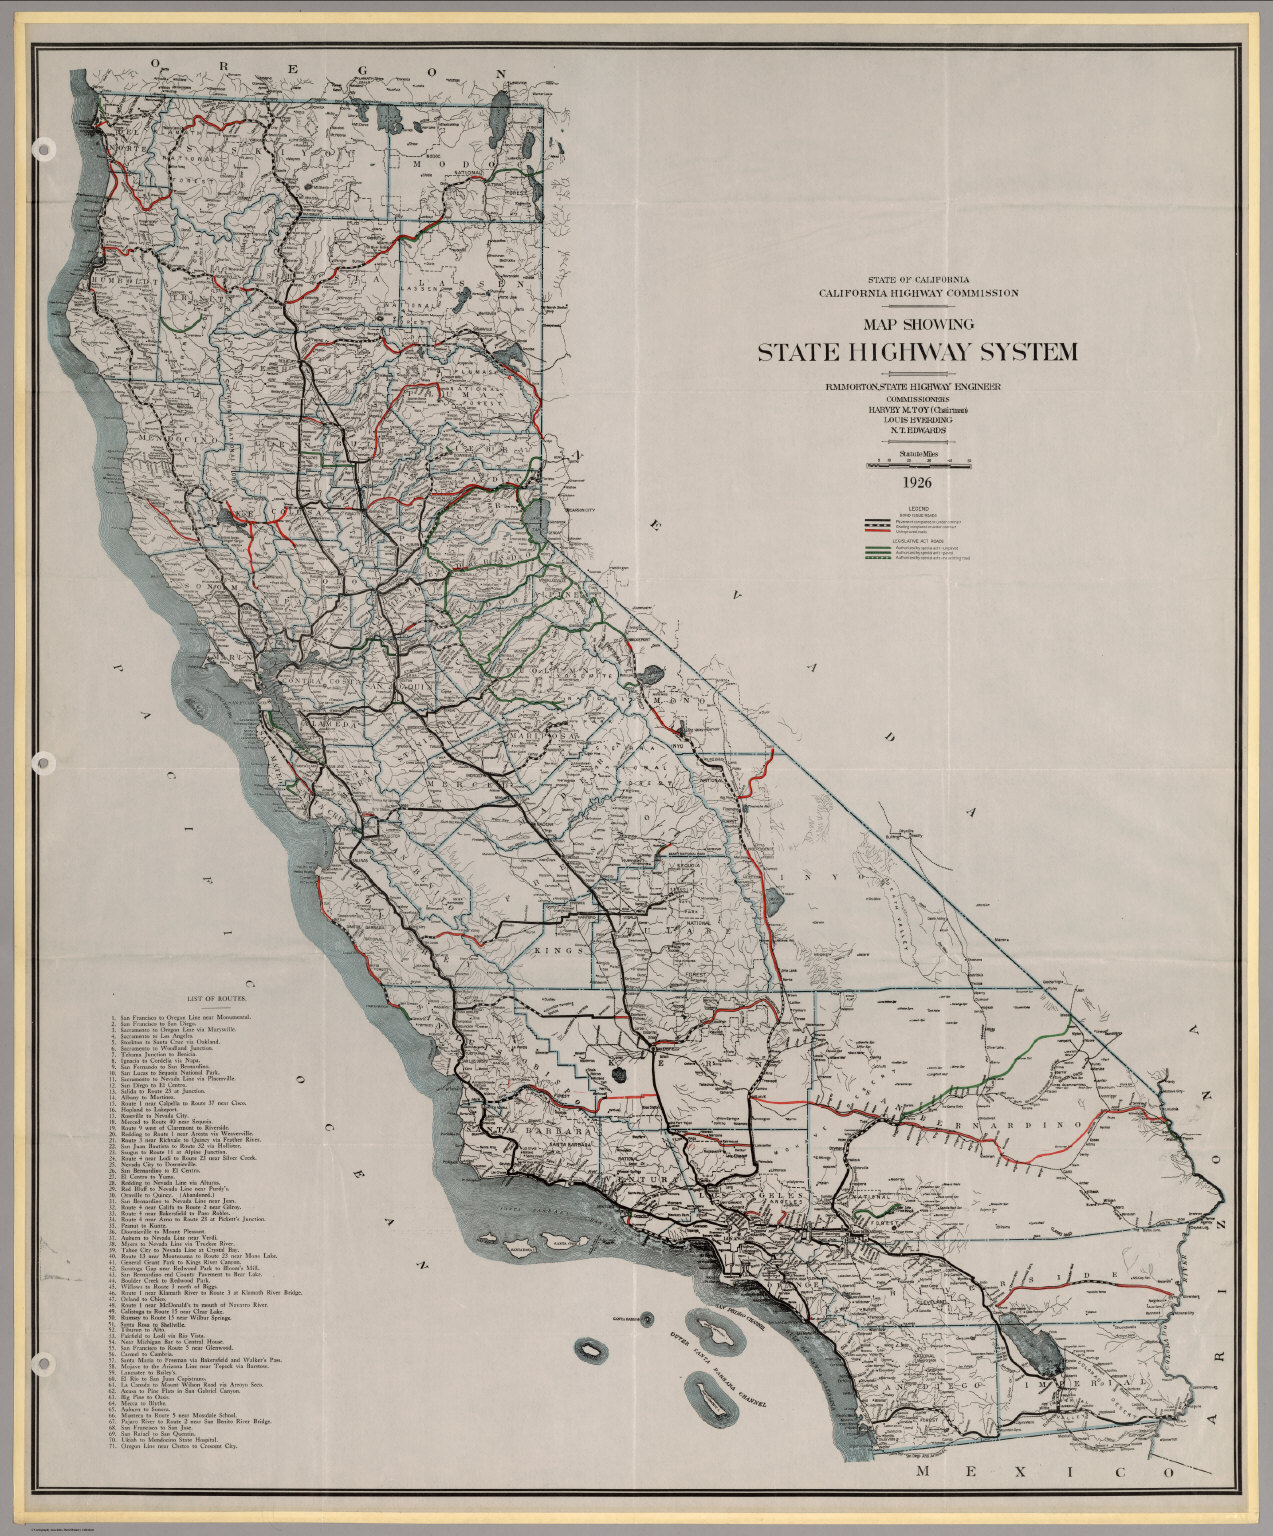 Map Showing State Highway System (California), 1926.